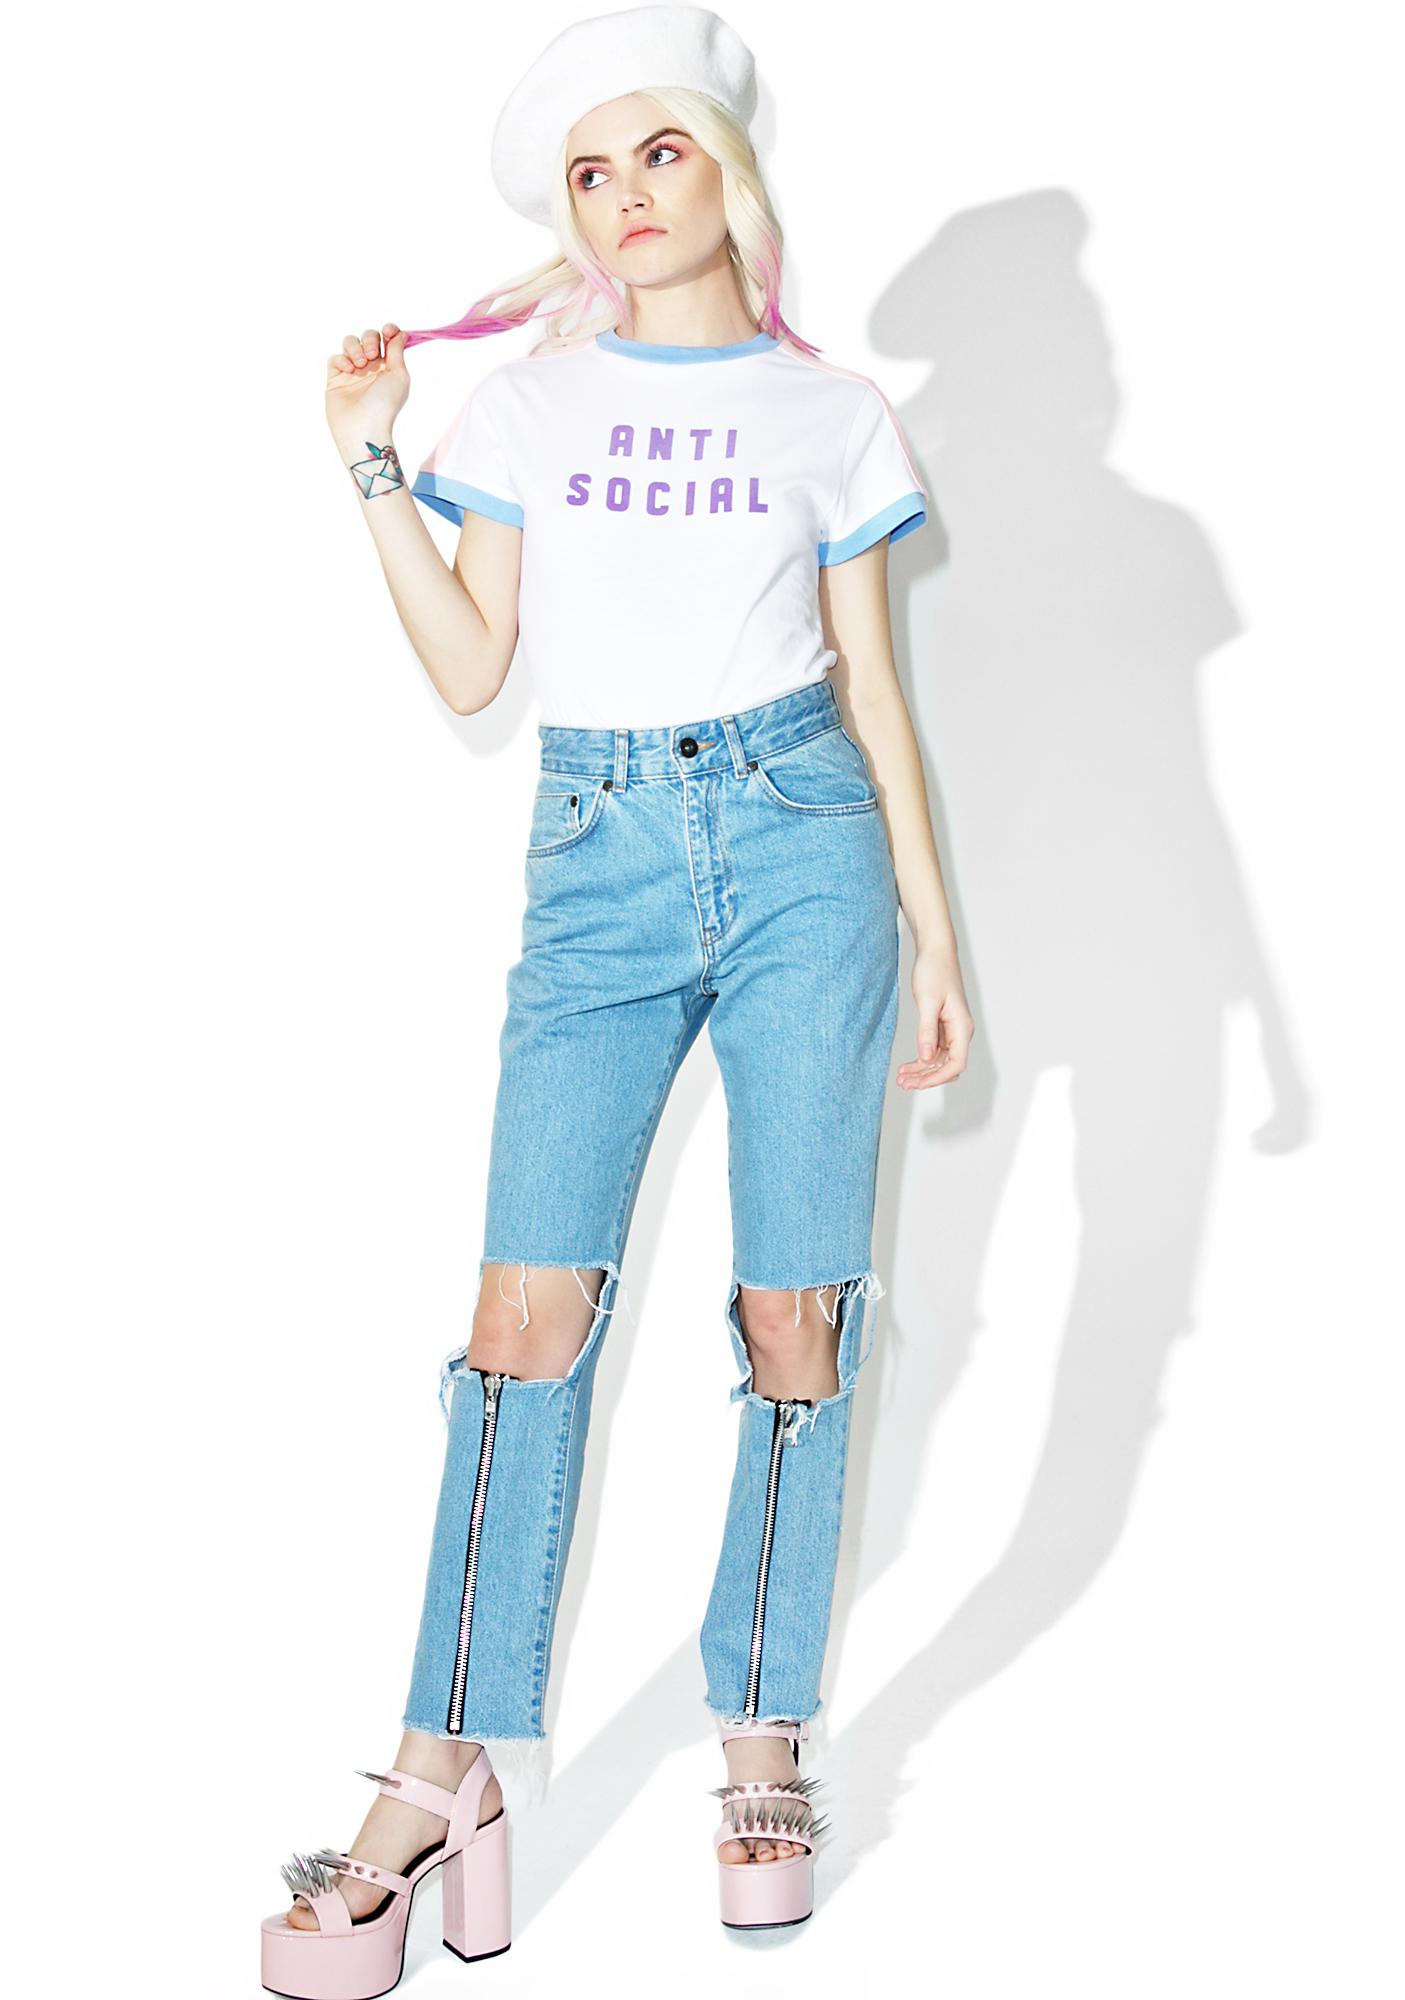 Lazy Oaf Anti Social Tee